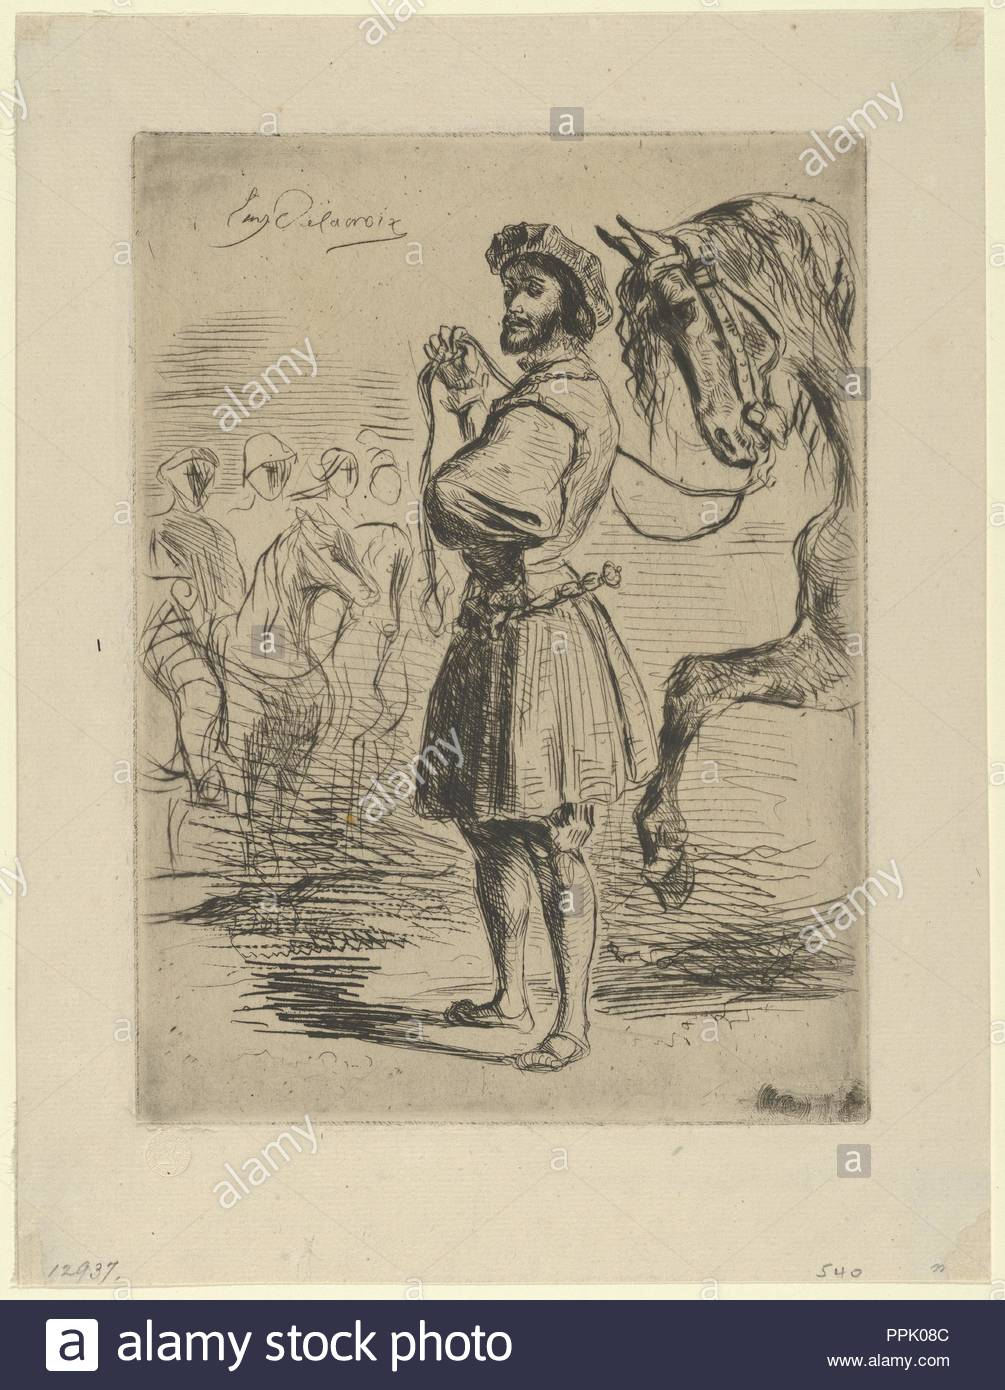 A Nobleman from the Time of Francis I. Artist: Eugène Delacroix (French, Charenton-Saint-Maurice 1798-1863 Paris). Dimensions: Plate: 7 1/16 x 5 1/4 in. (18 x 13.3 cm)  Sheet: 9 1/8 x 6 15/16 in. (23.1 x 17.7 cm). Date: 1833. Museum: Metropolitan Museum of Art, New York, USA. - Stock Image